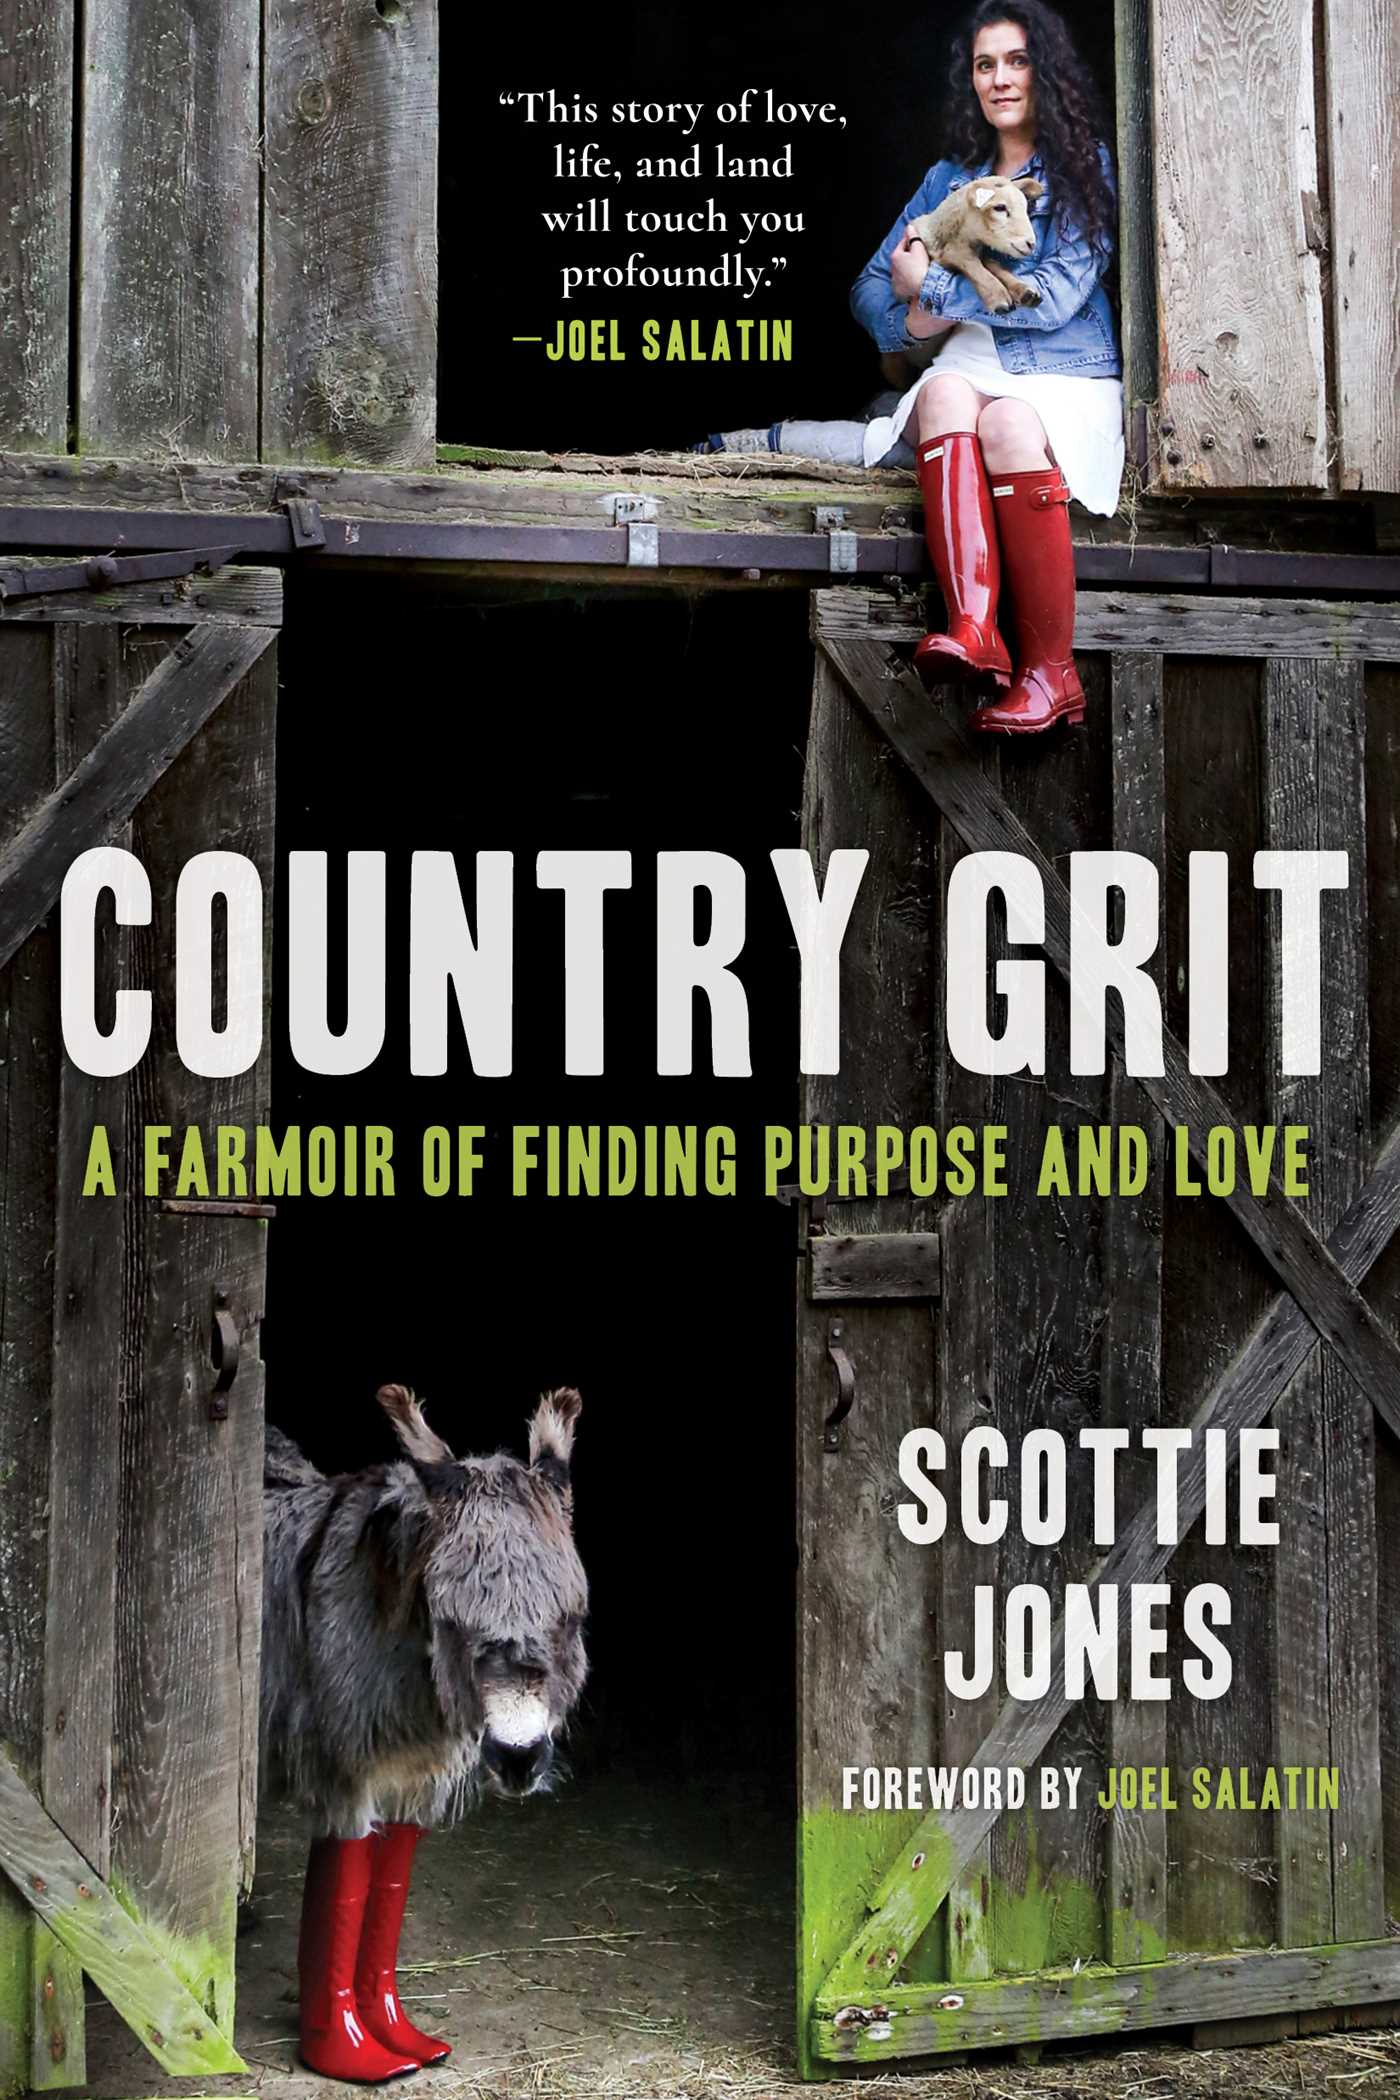 Country grit 9781510742871 hr